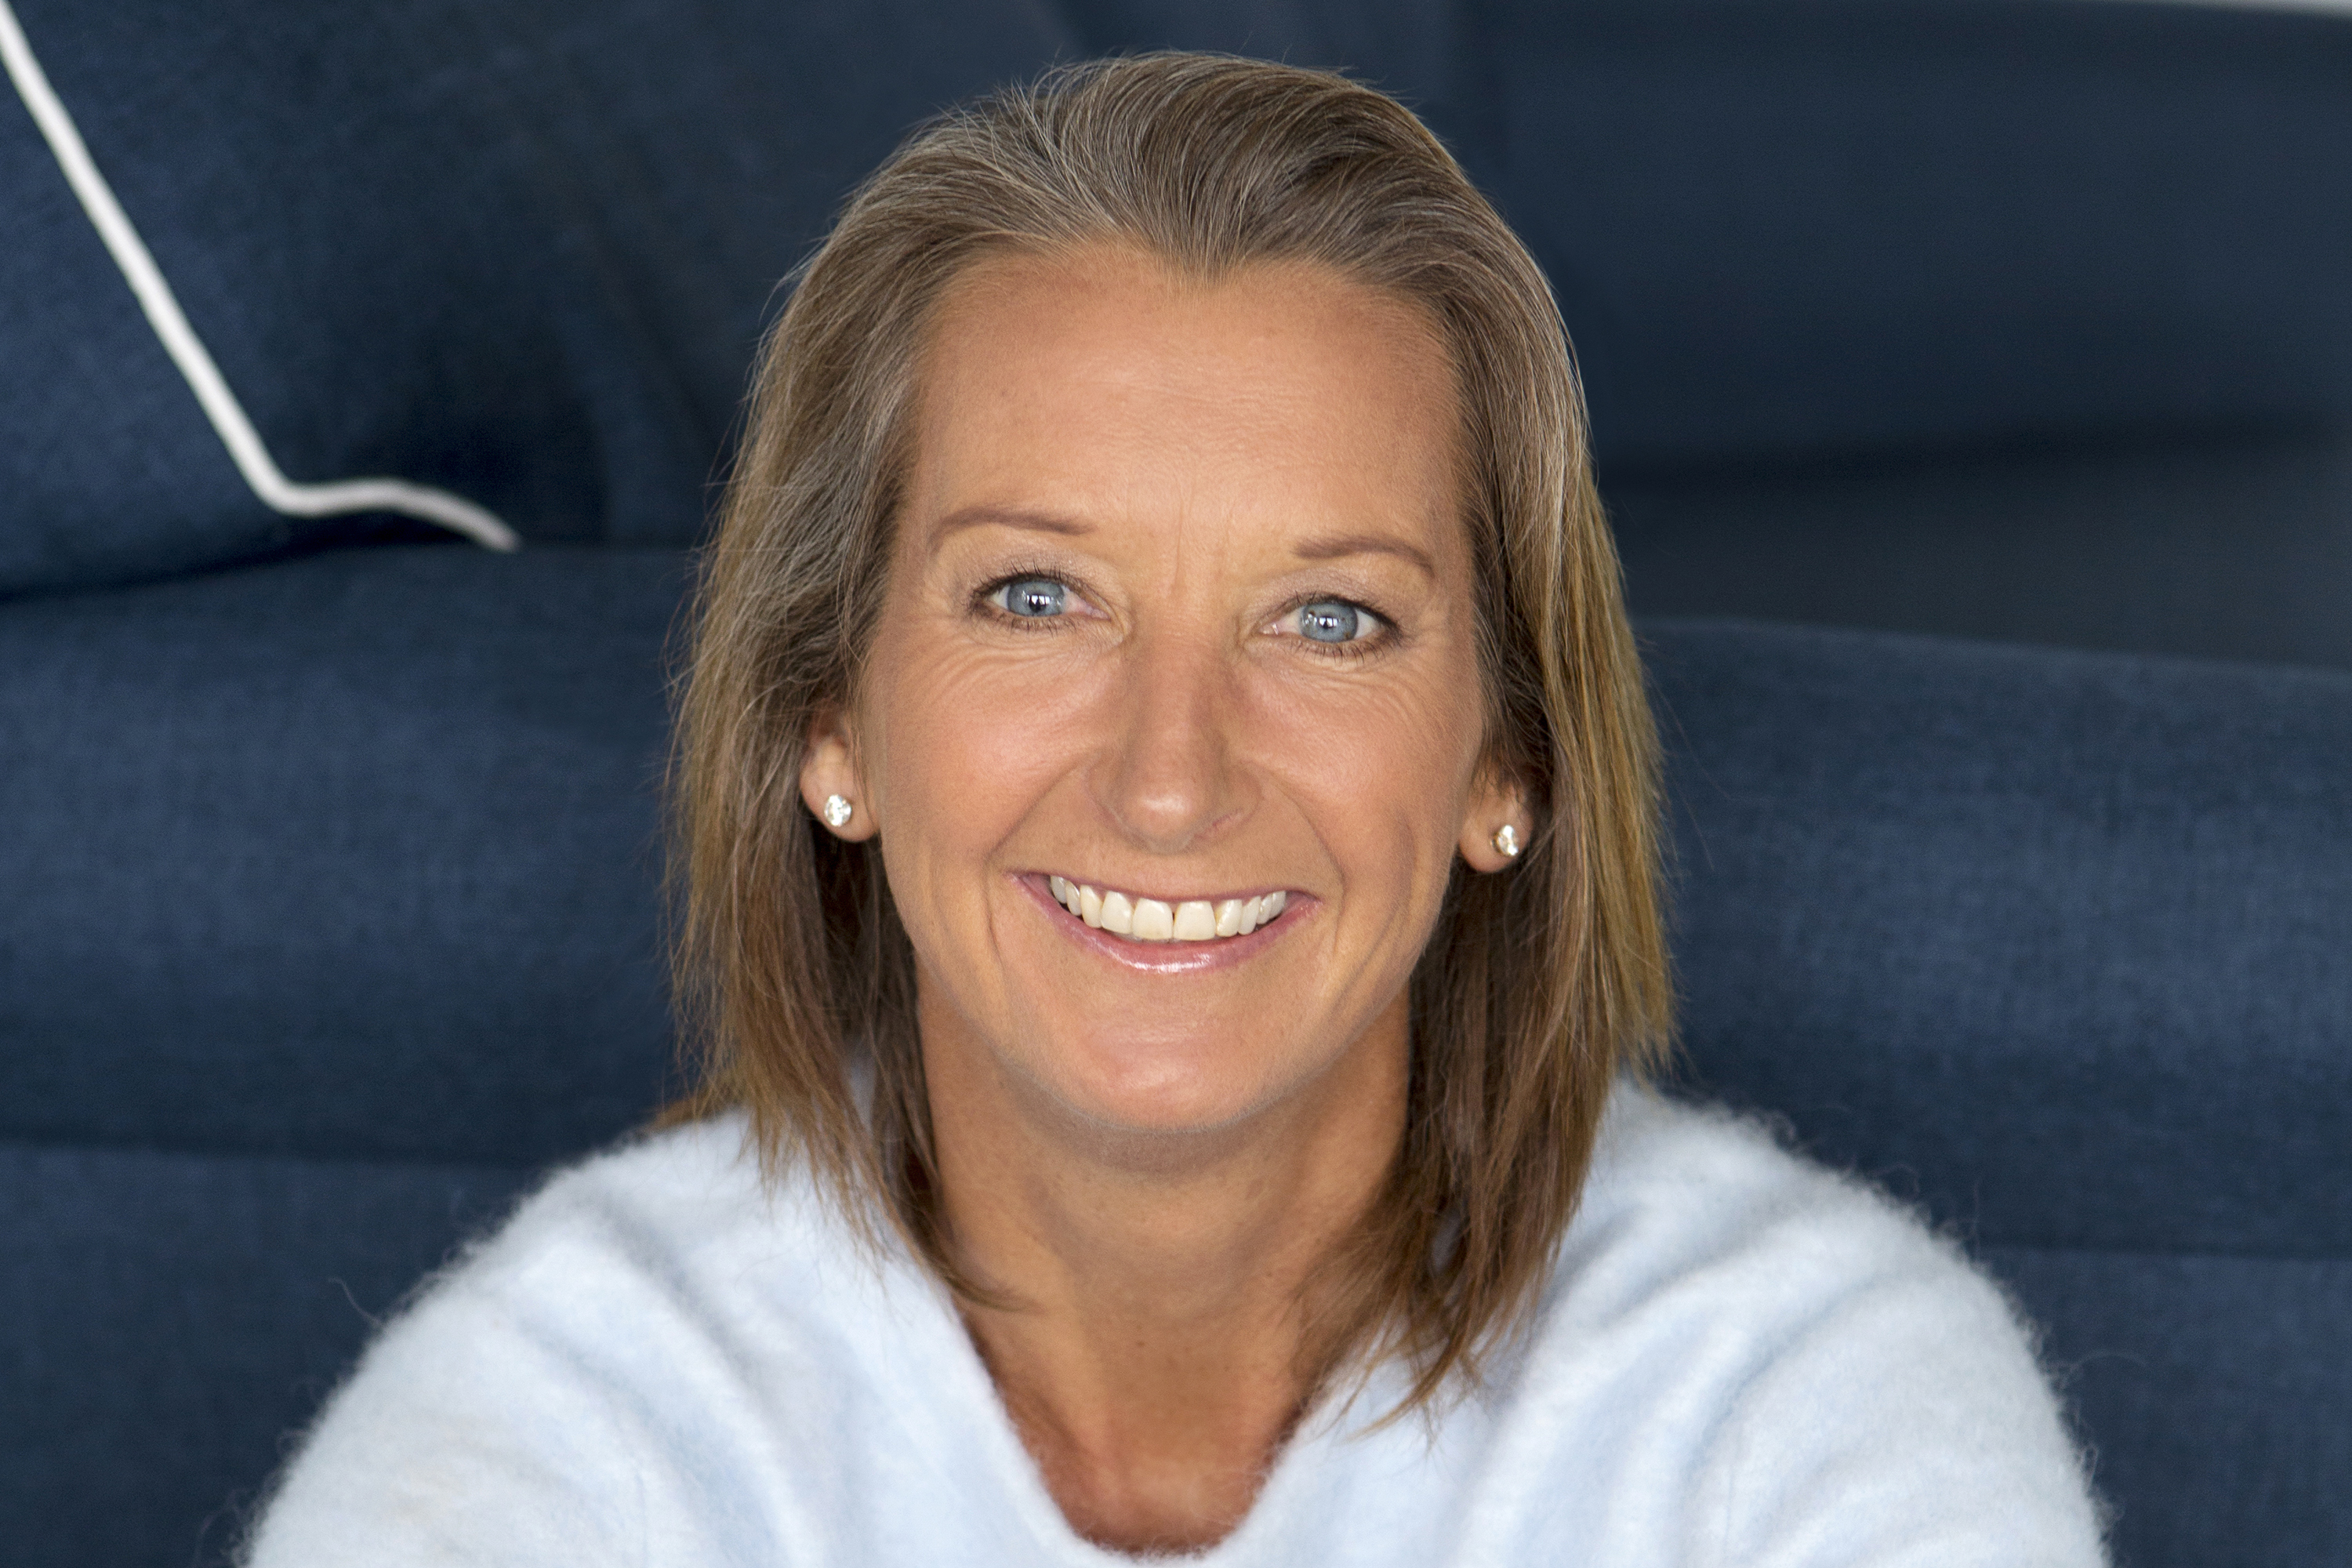 Speakers related to Tim Cope: Layne  Beachley